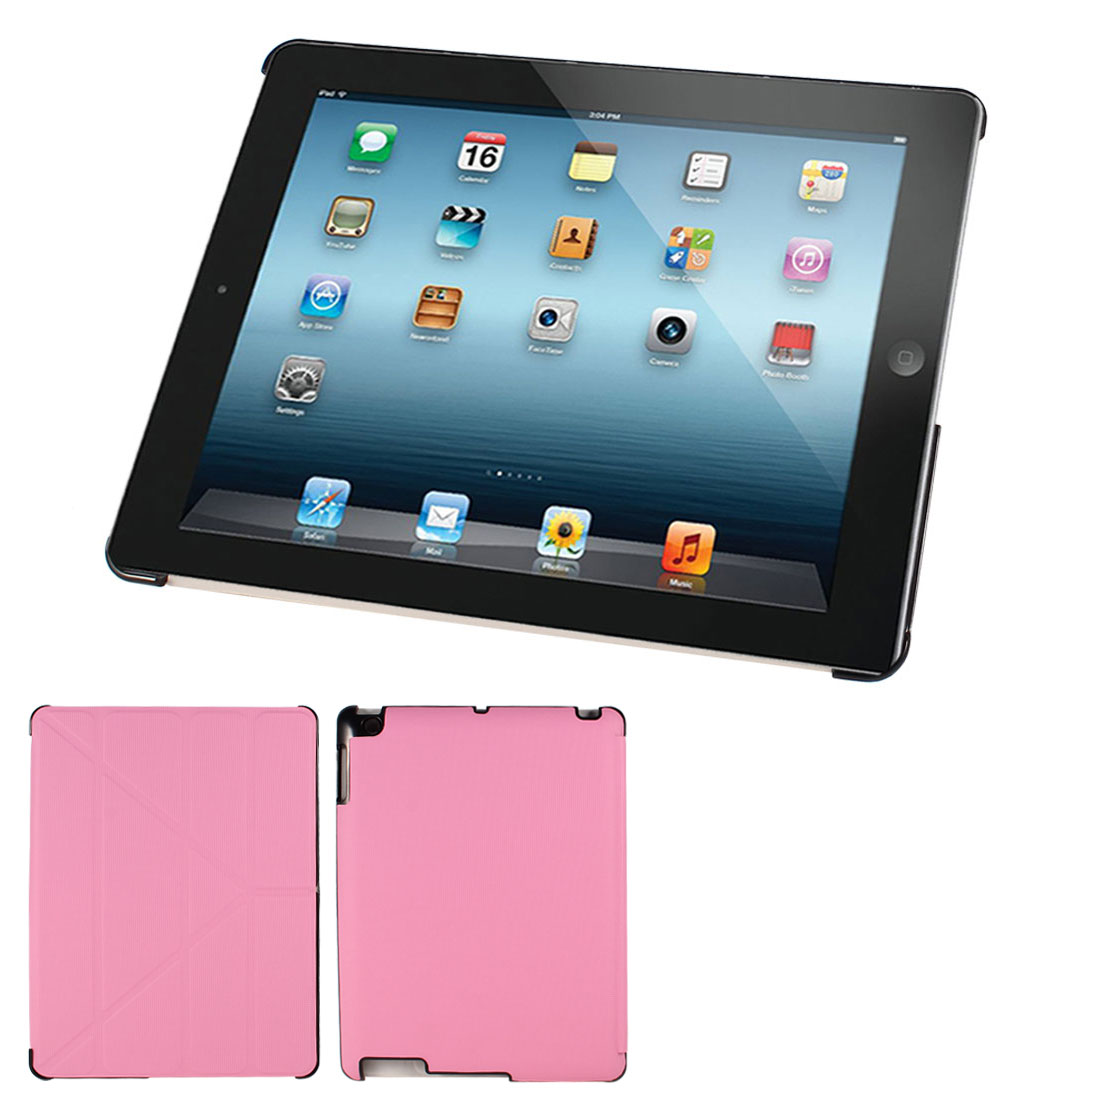 Checkered Print Flip Folio Stand Case Cover Pink for iPad 2 3 4